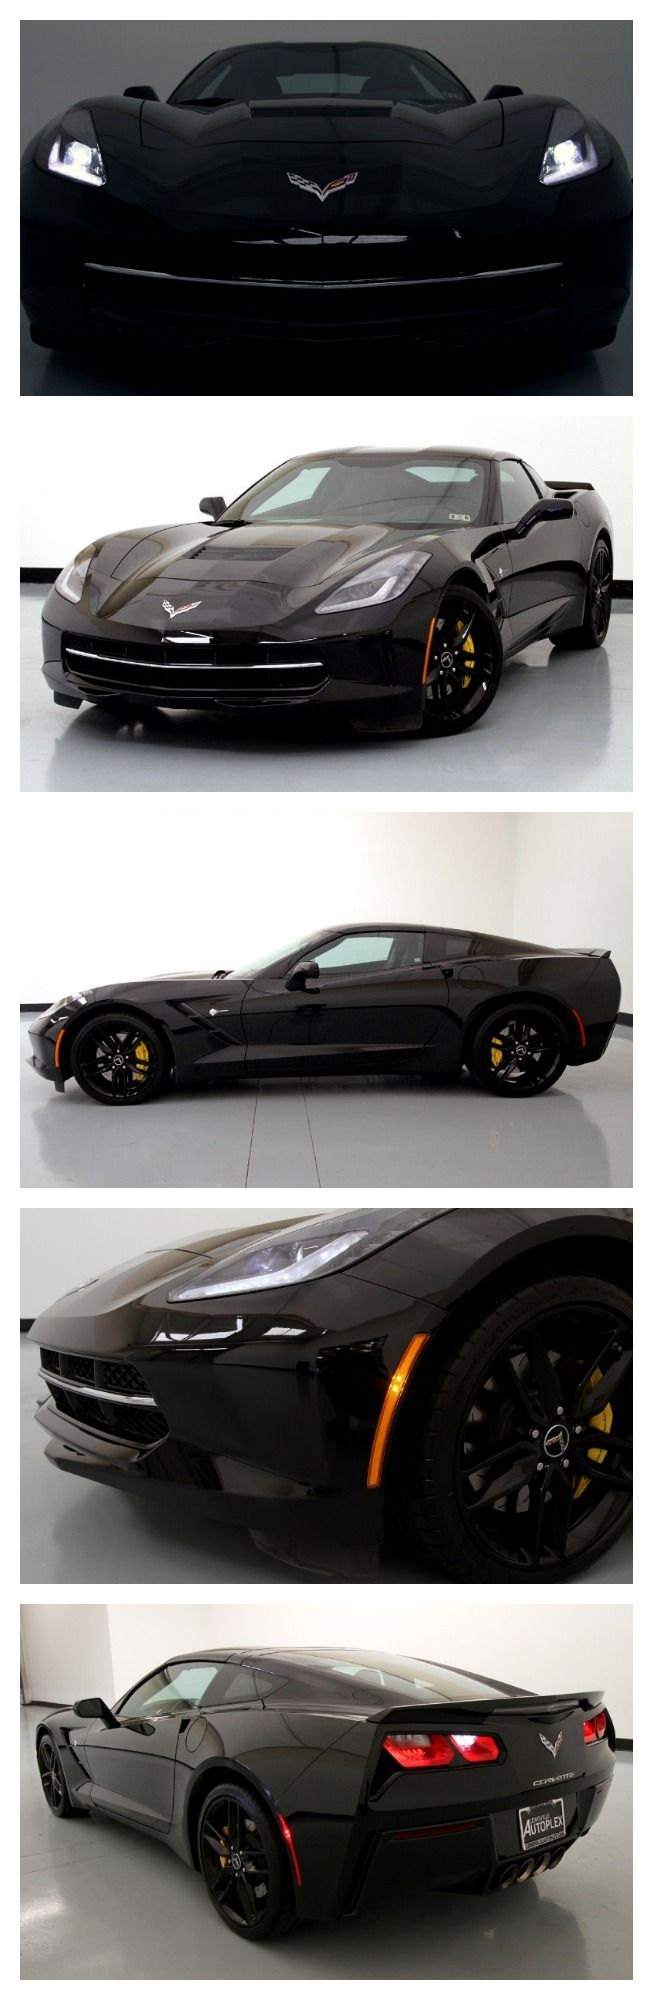 Chevy Stingray 3LT Z51 with one hell of a performance package! Beautiful